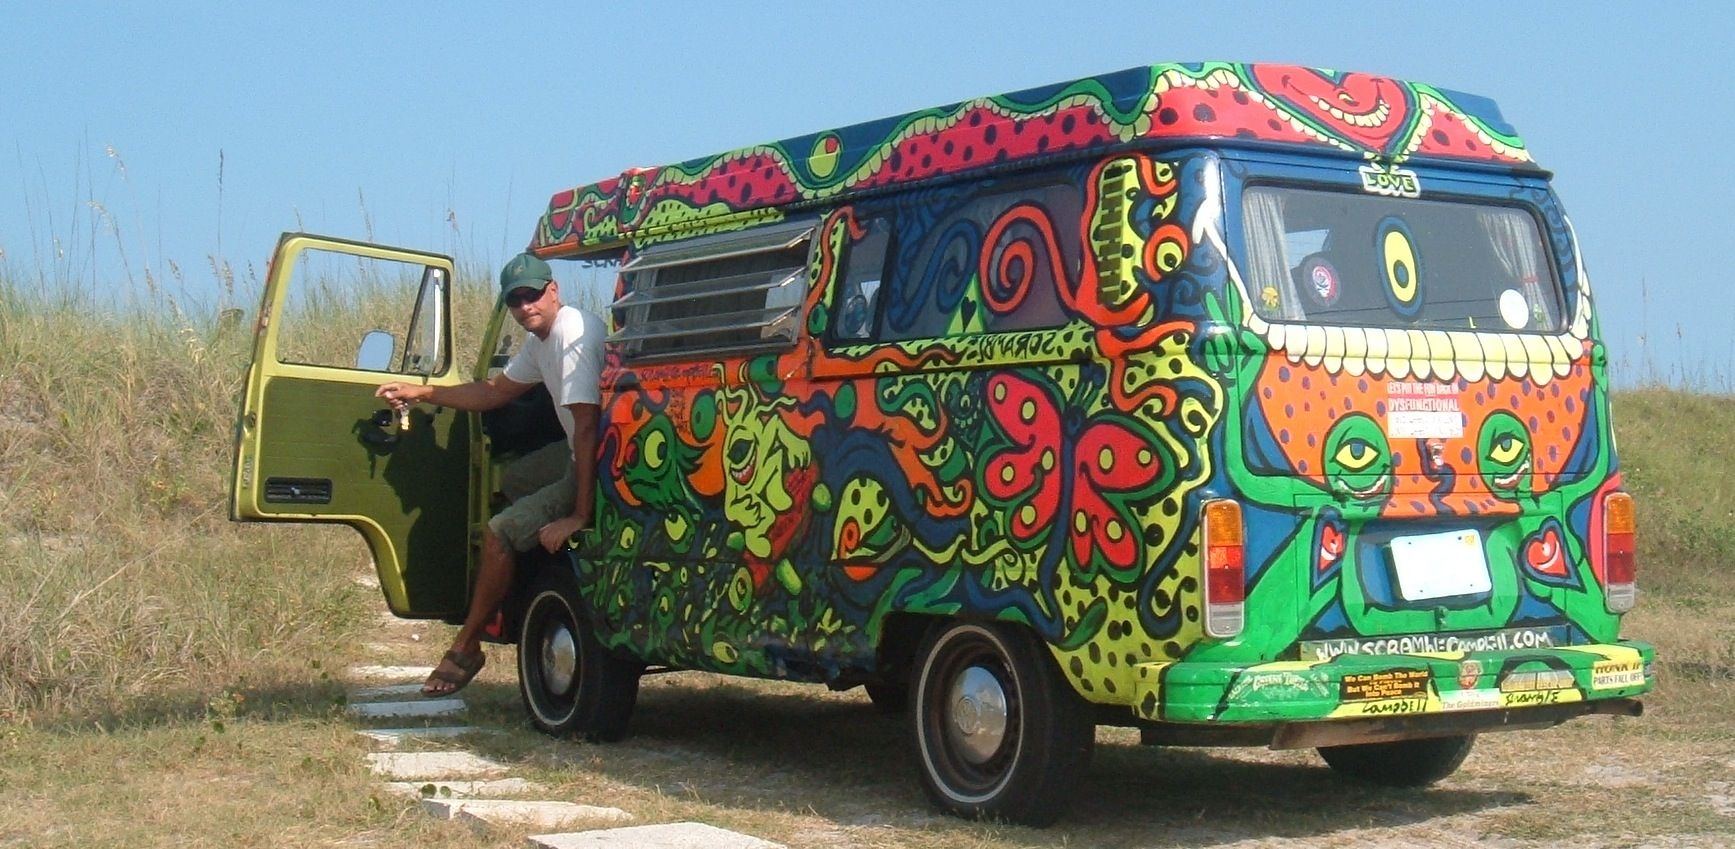 hippie vans whoa hippie van awesome p by. Black Bedroom Furniture Sets. Home Design Ideas